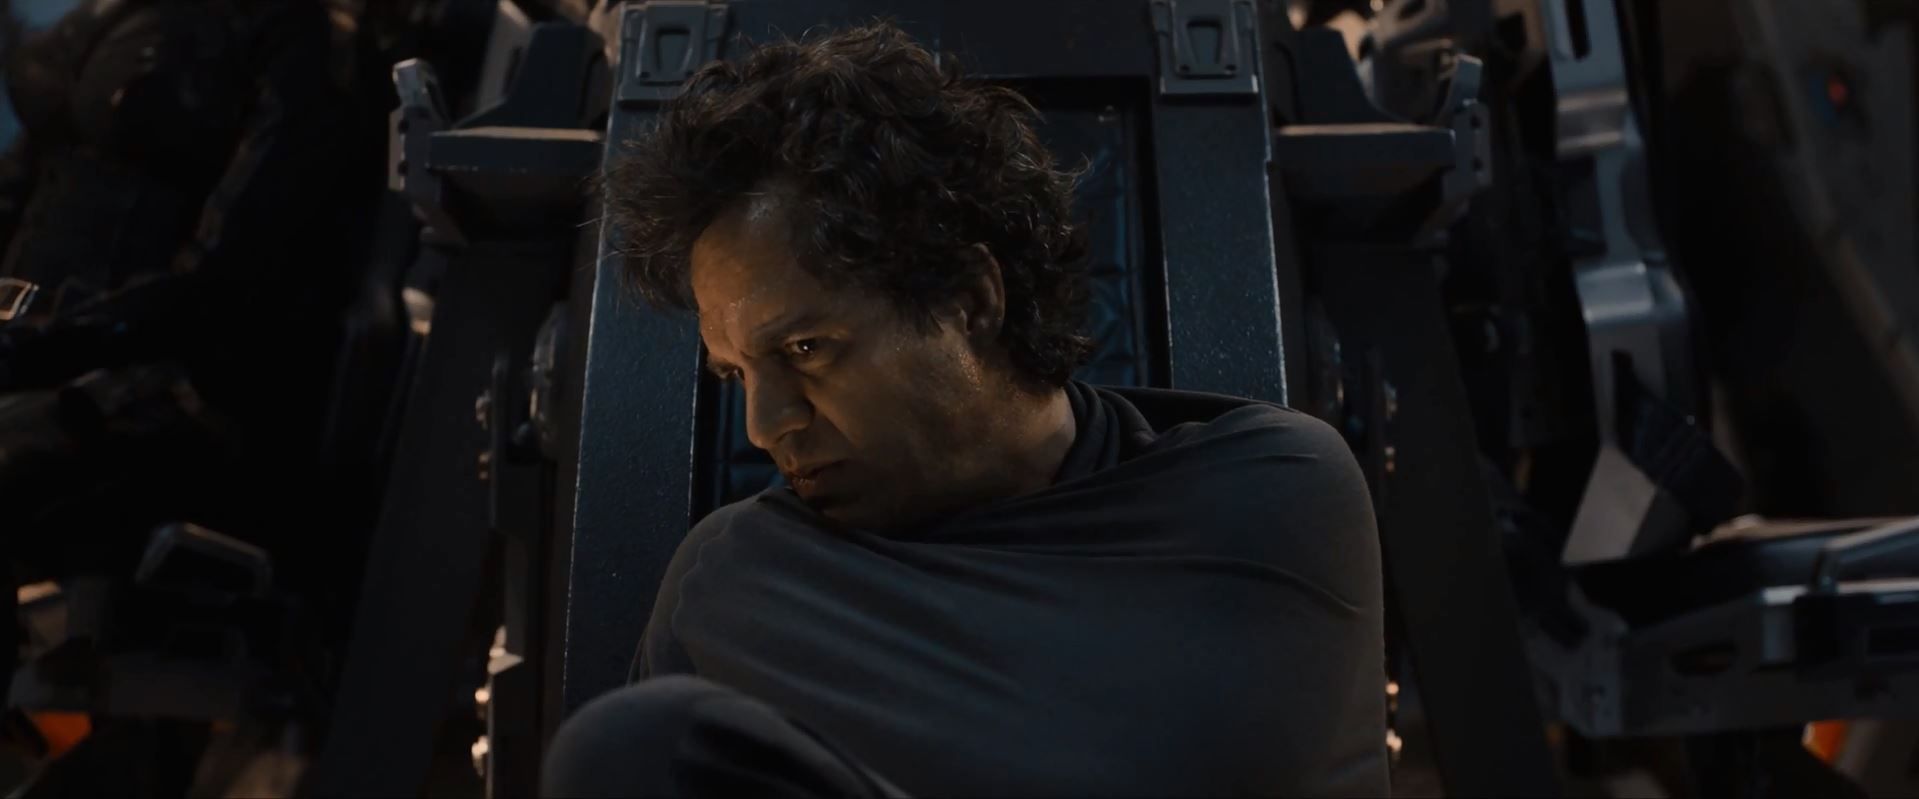 Avengers Age Of Ultron Trailer Released - Mark Ruffalo as Dr. Bruce Banner The Hulk